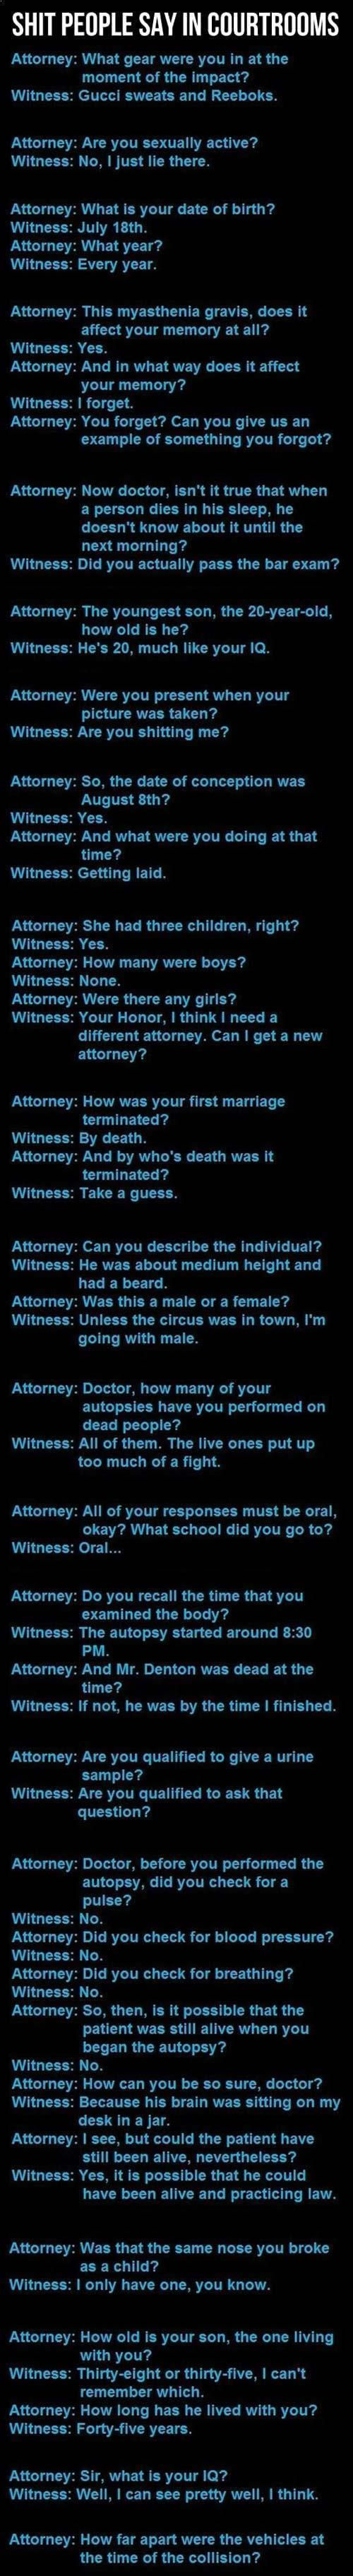 These are great!! And if I ever need a lawyer, I'm giving him an IQ test first!!! Lol